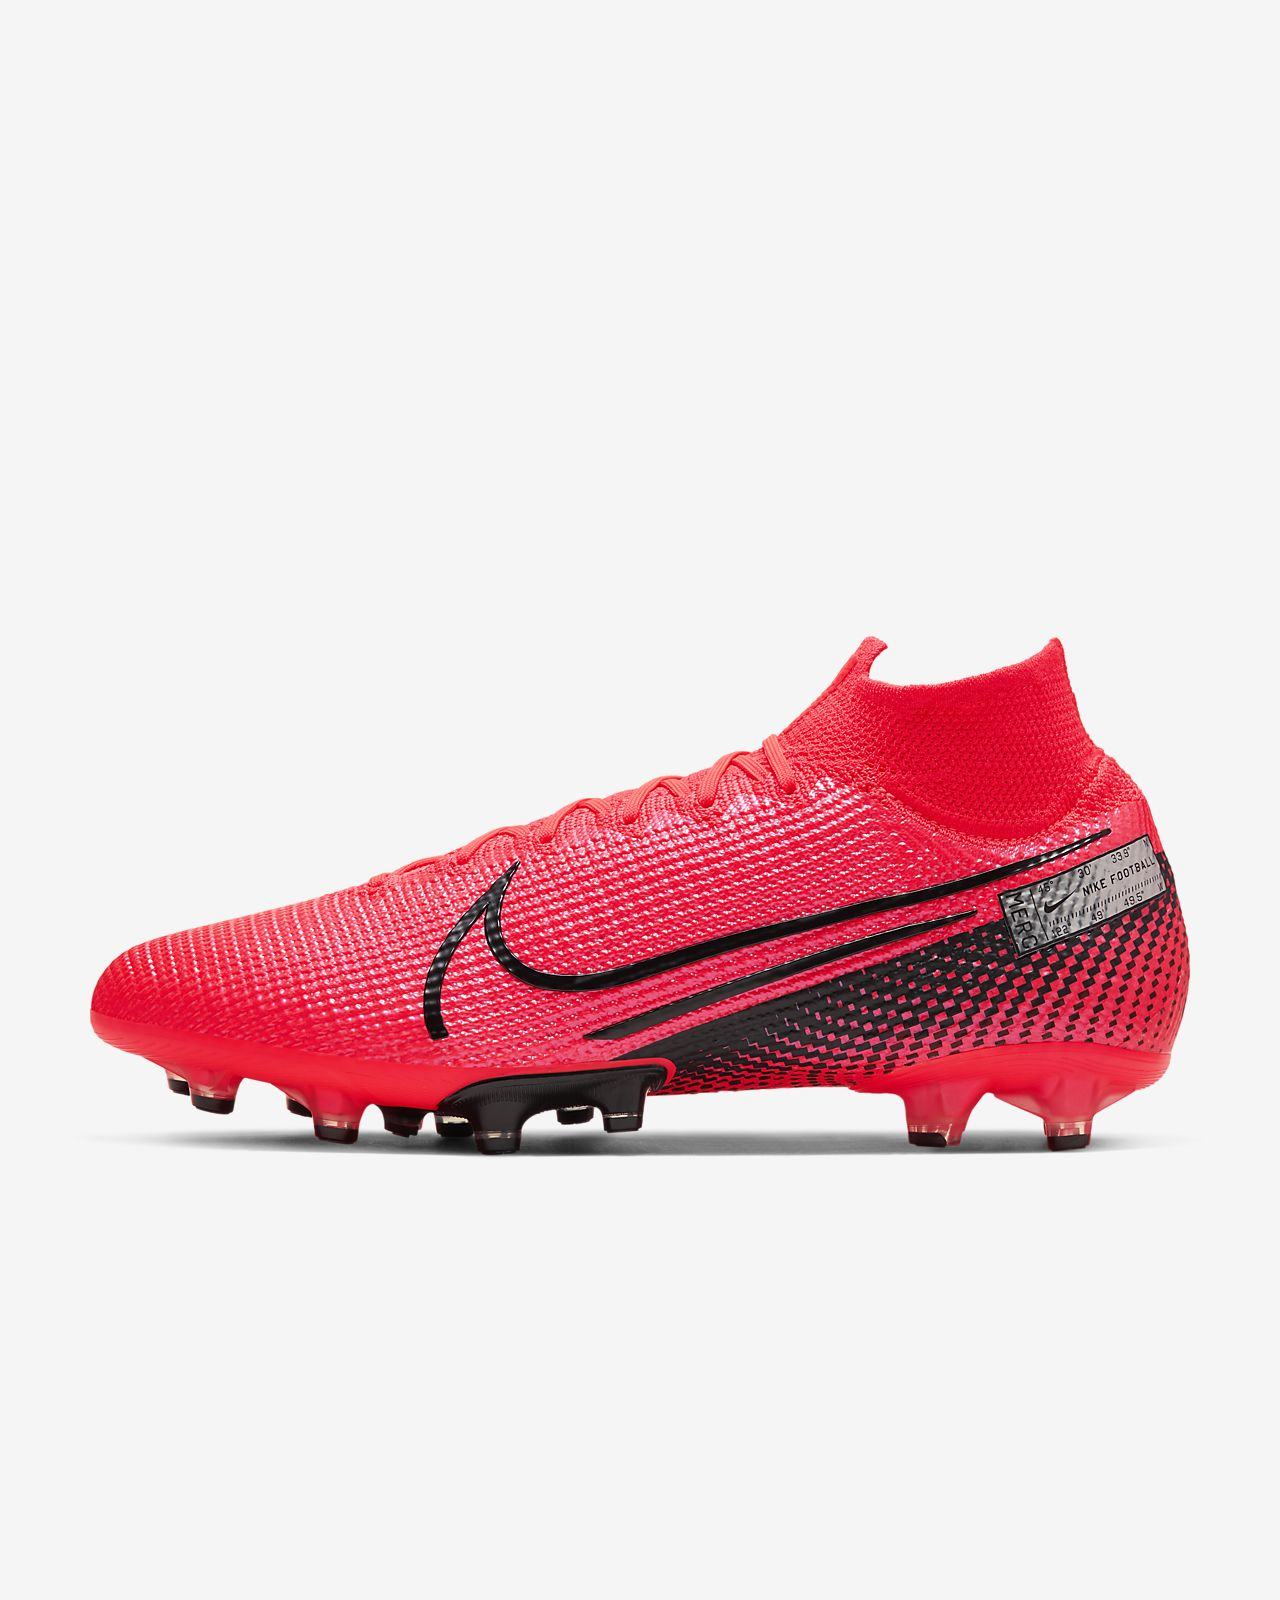 Nike Football Boots Mercurial : Nike | The latest shoes for